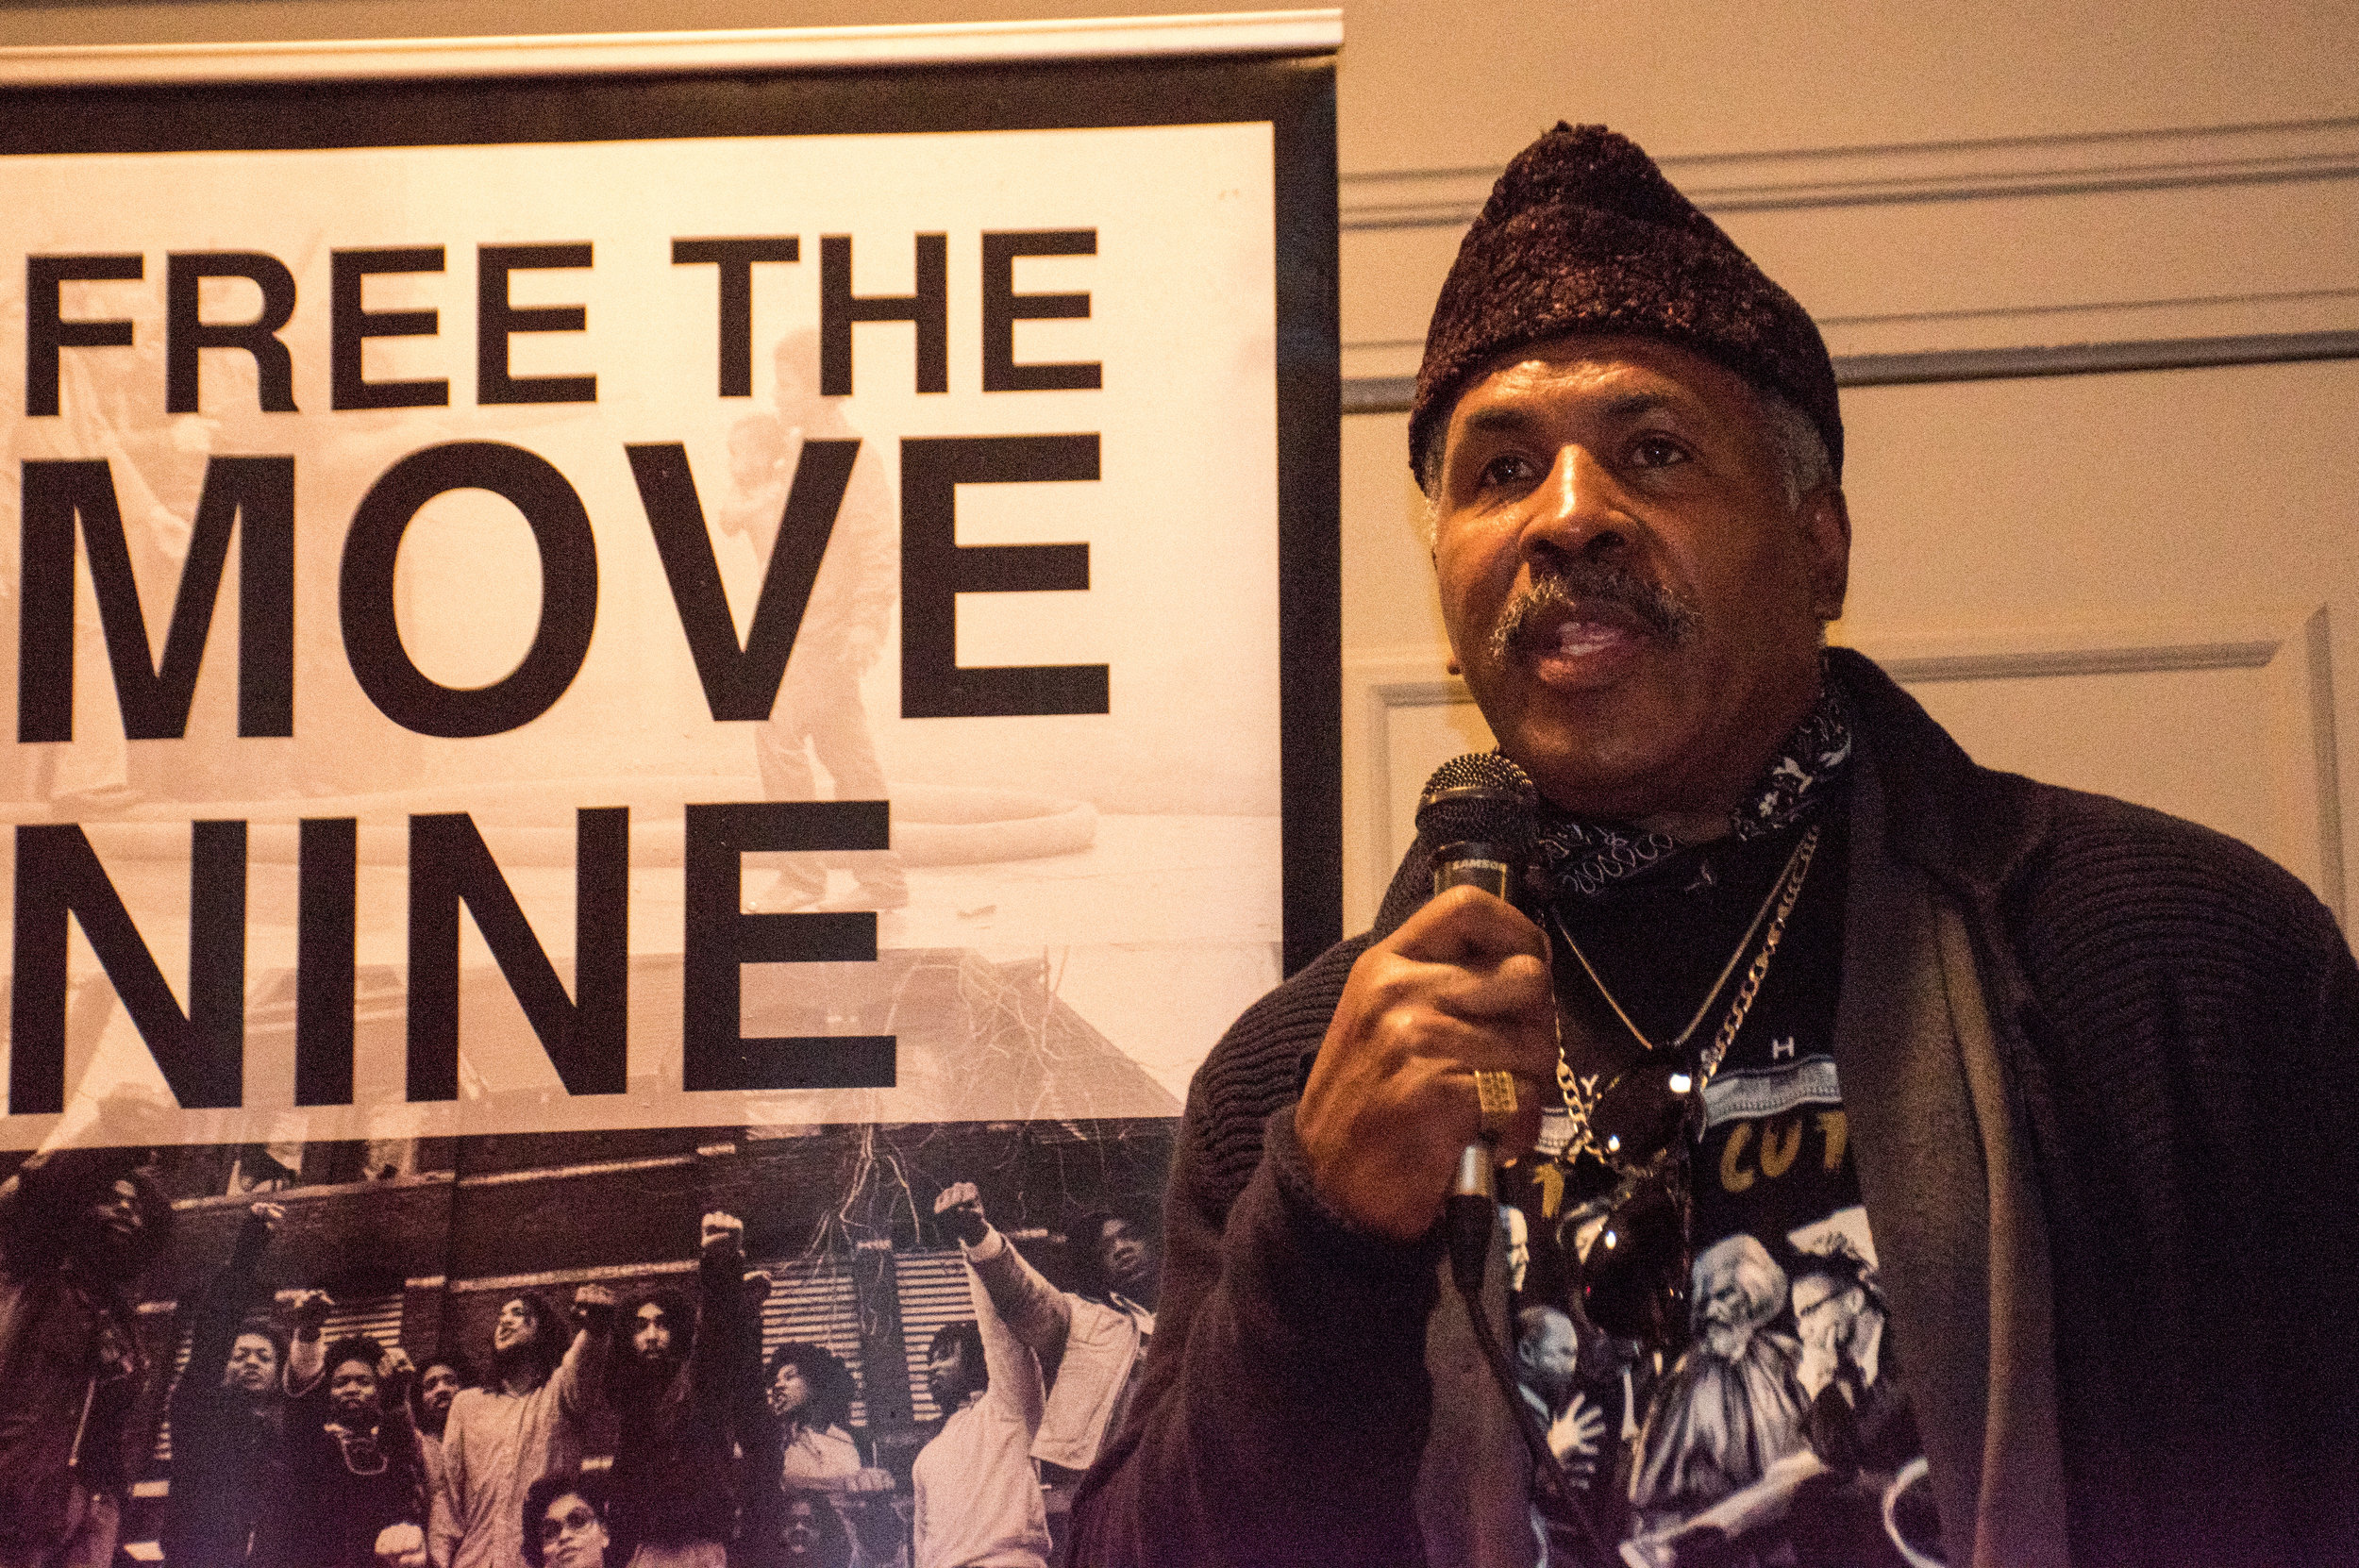 Jan 5 Peoples Constitutional Protest Party for Mumia's Freedom  James Chisolm, Jr. recounted being a high school organizer with Mumia at Benjamin Franklin High School, fighting racism within the school system in the 1970's.